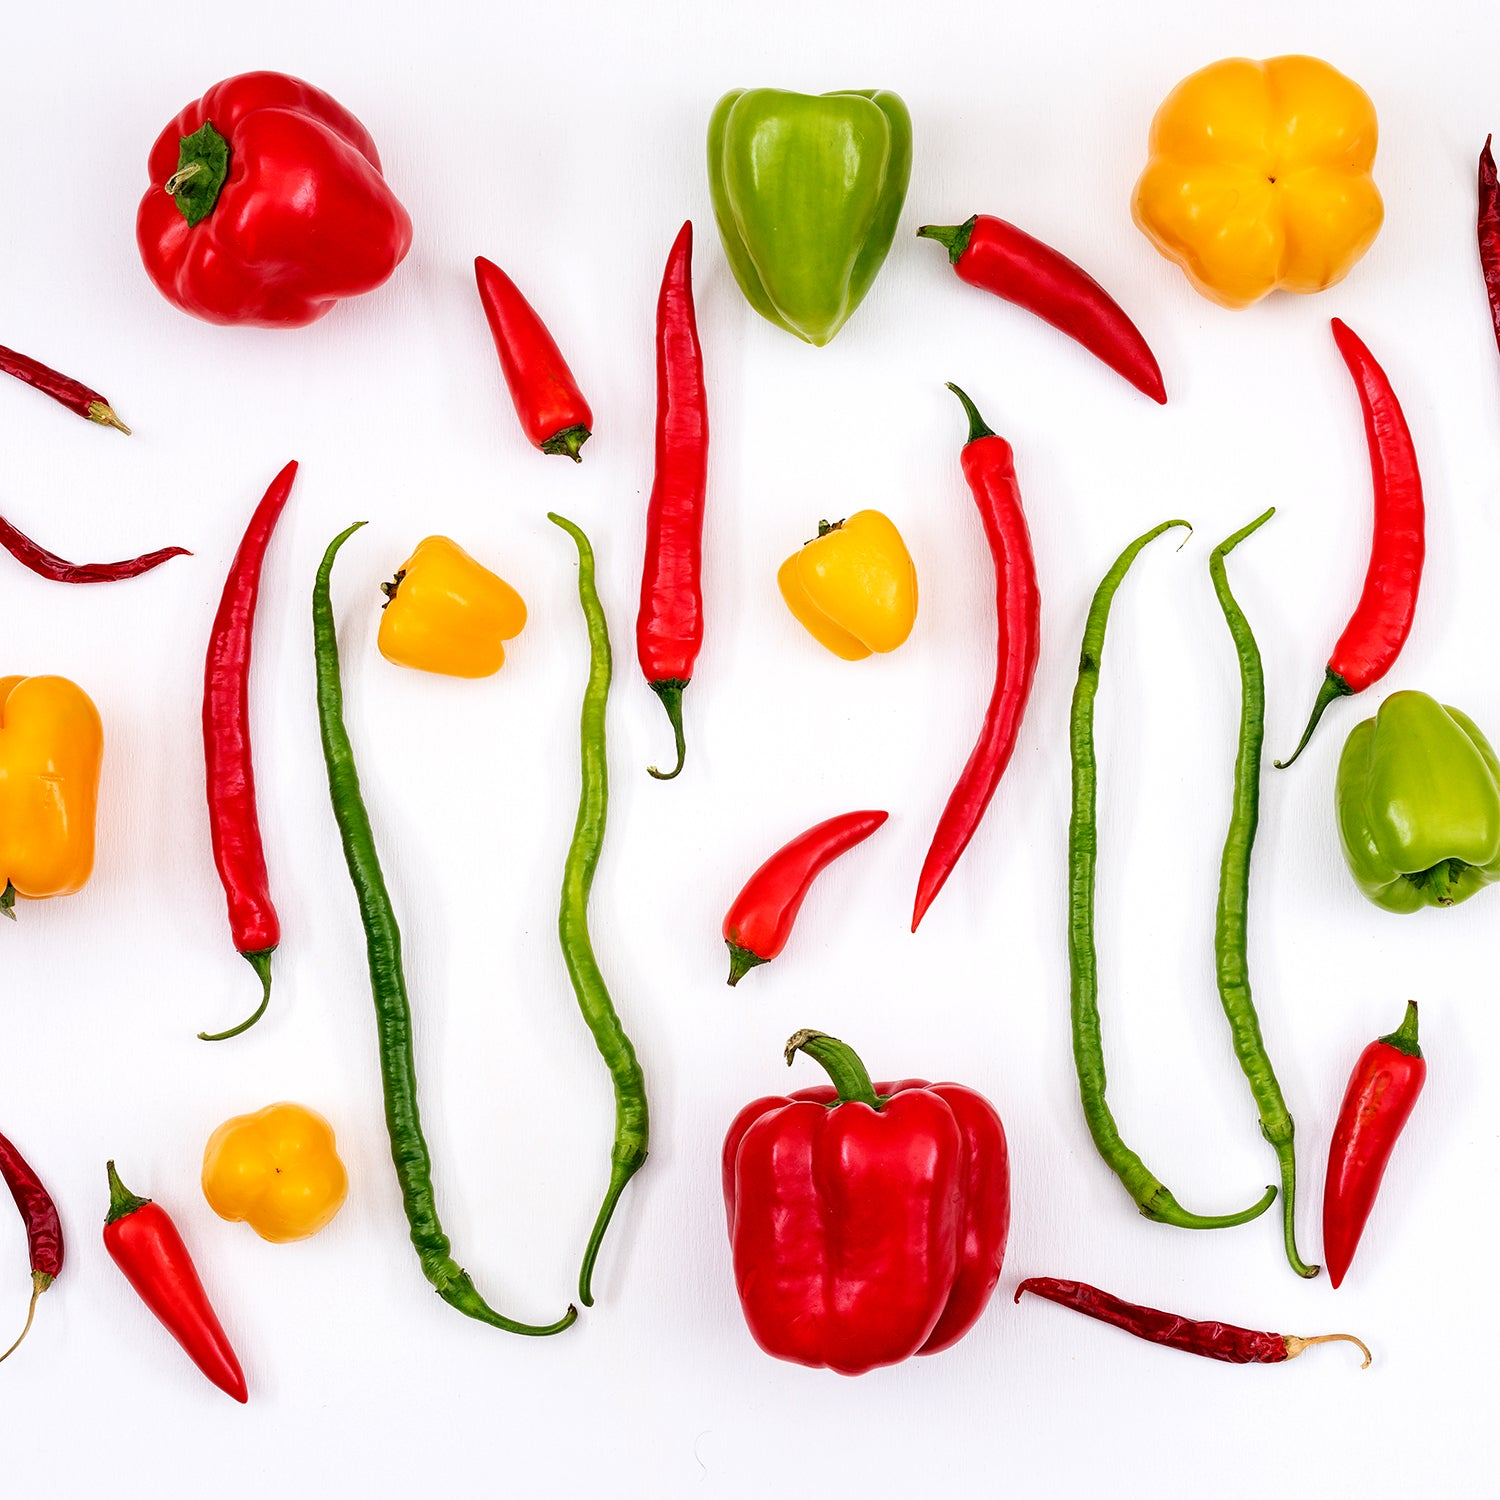 4 Reasons to Embrace Chili Peppers